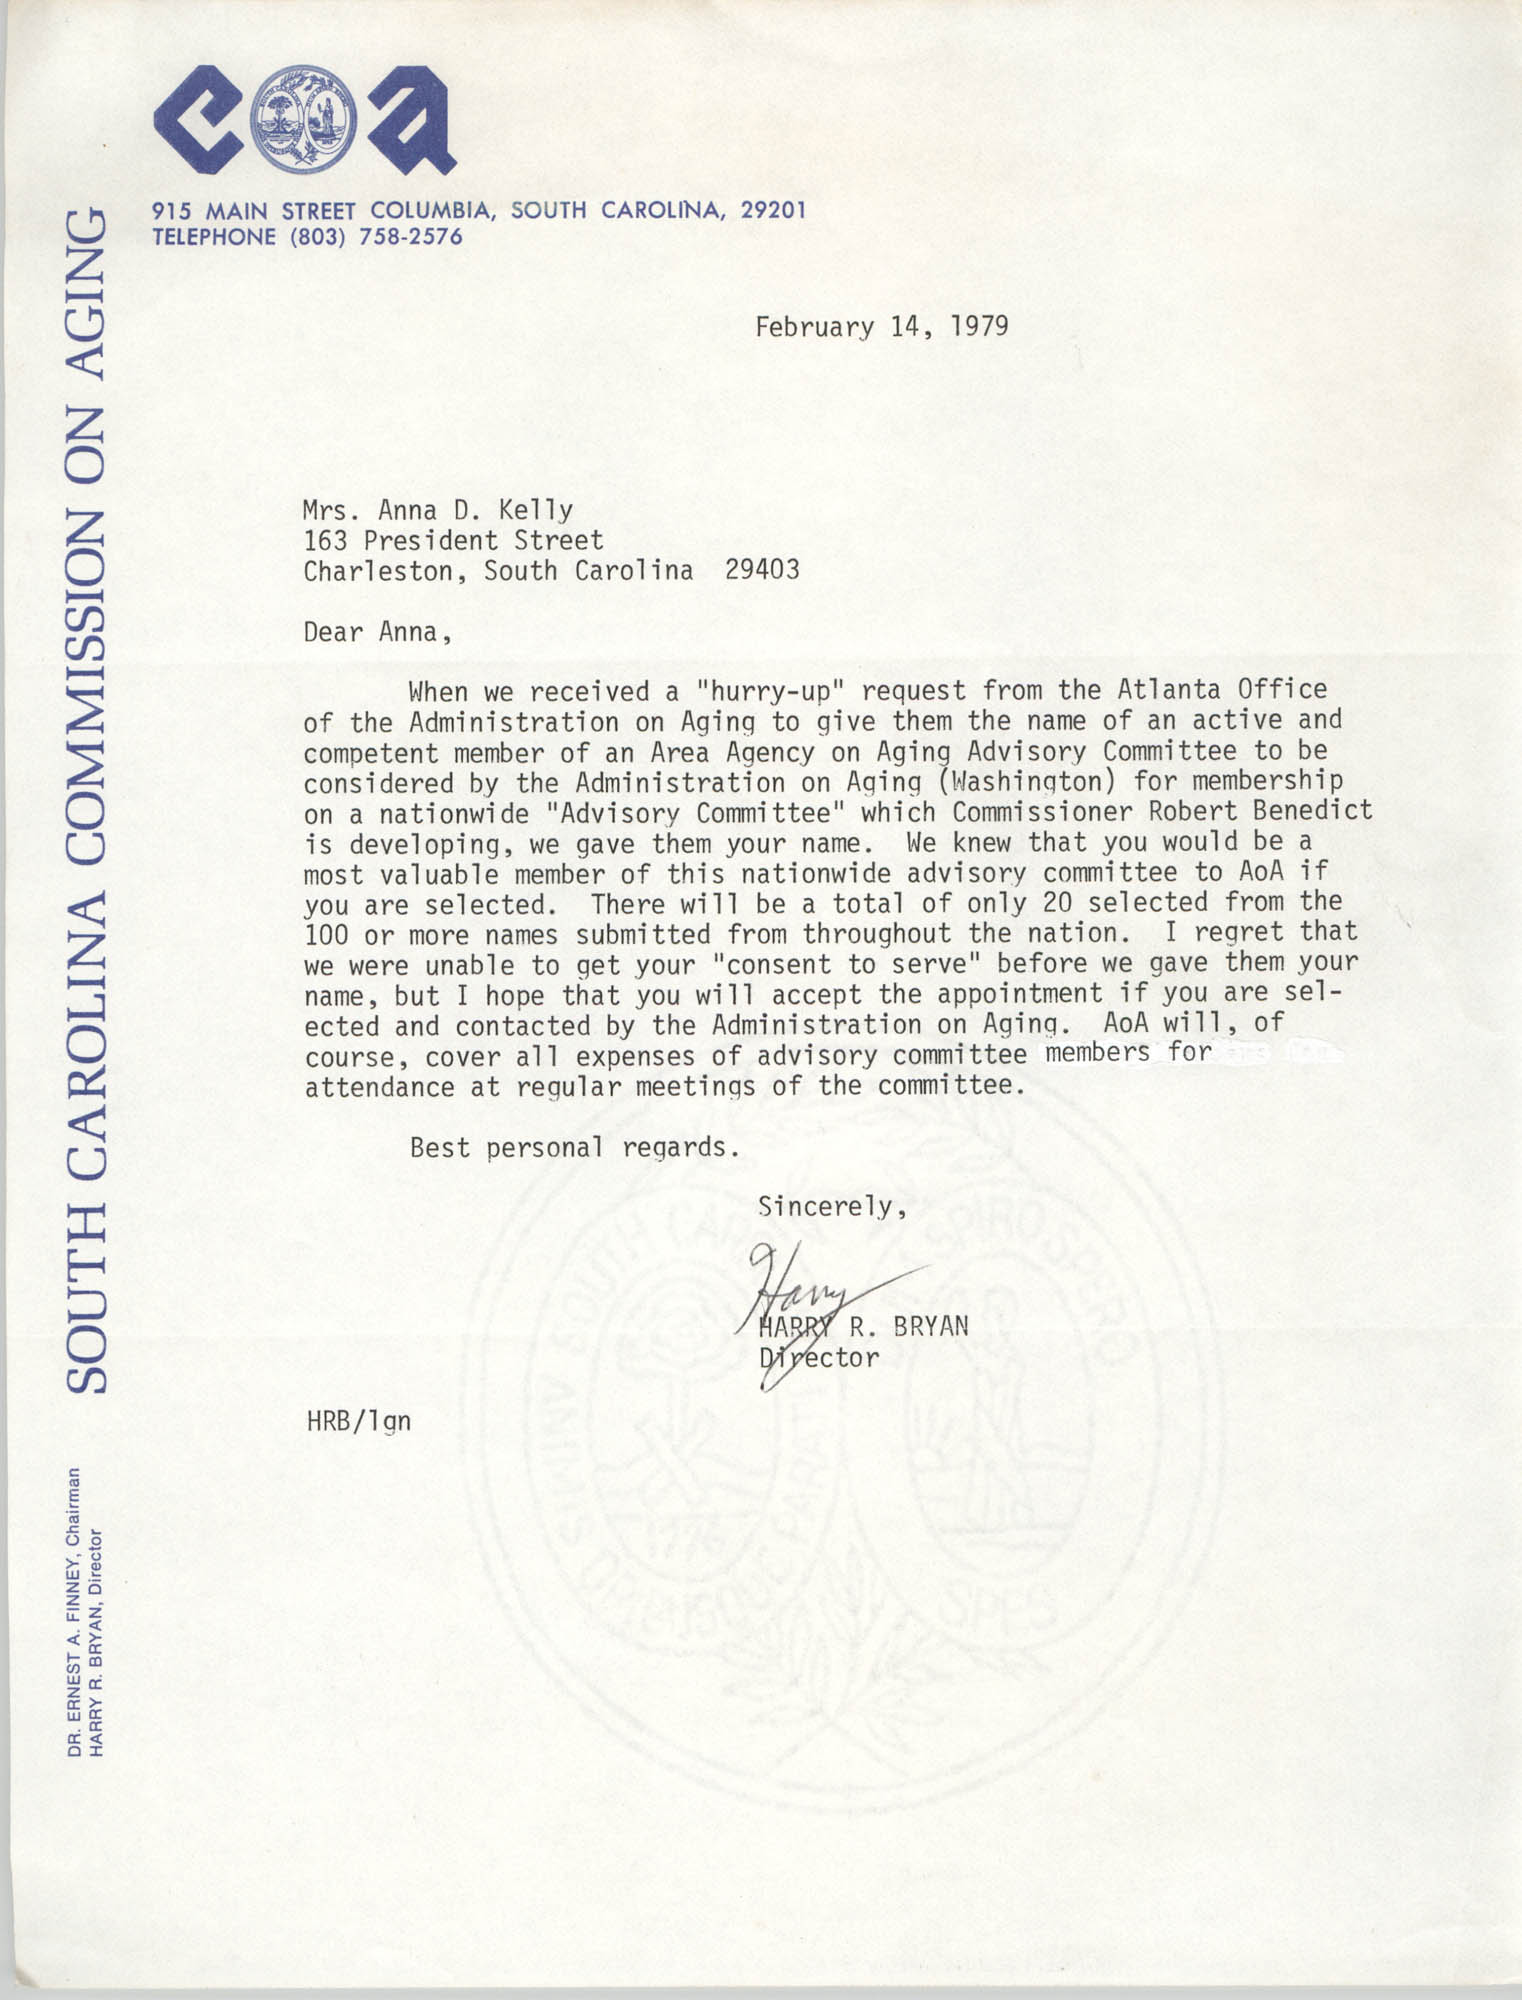 Letter from Harry R. Bryan to Anna D. Kelly, February 14, 1979